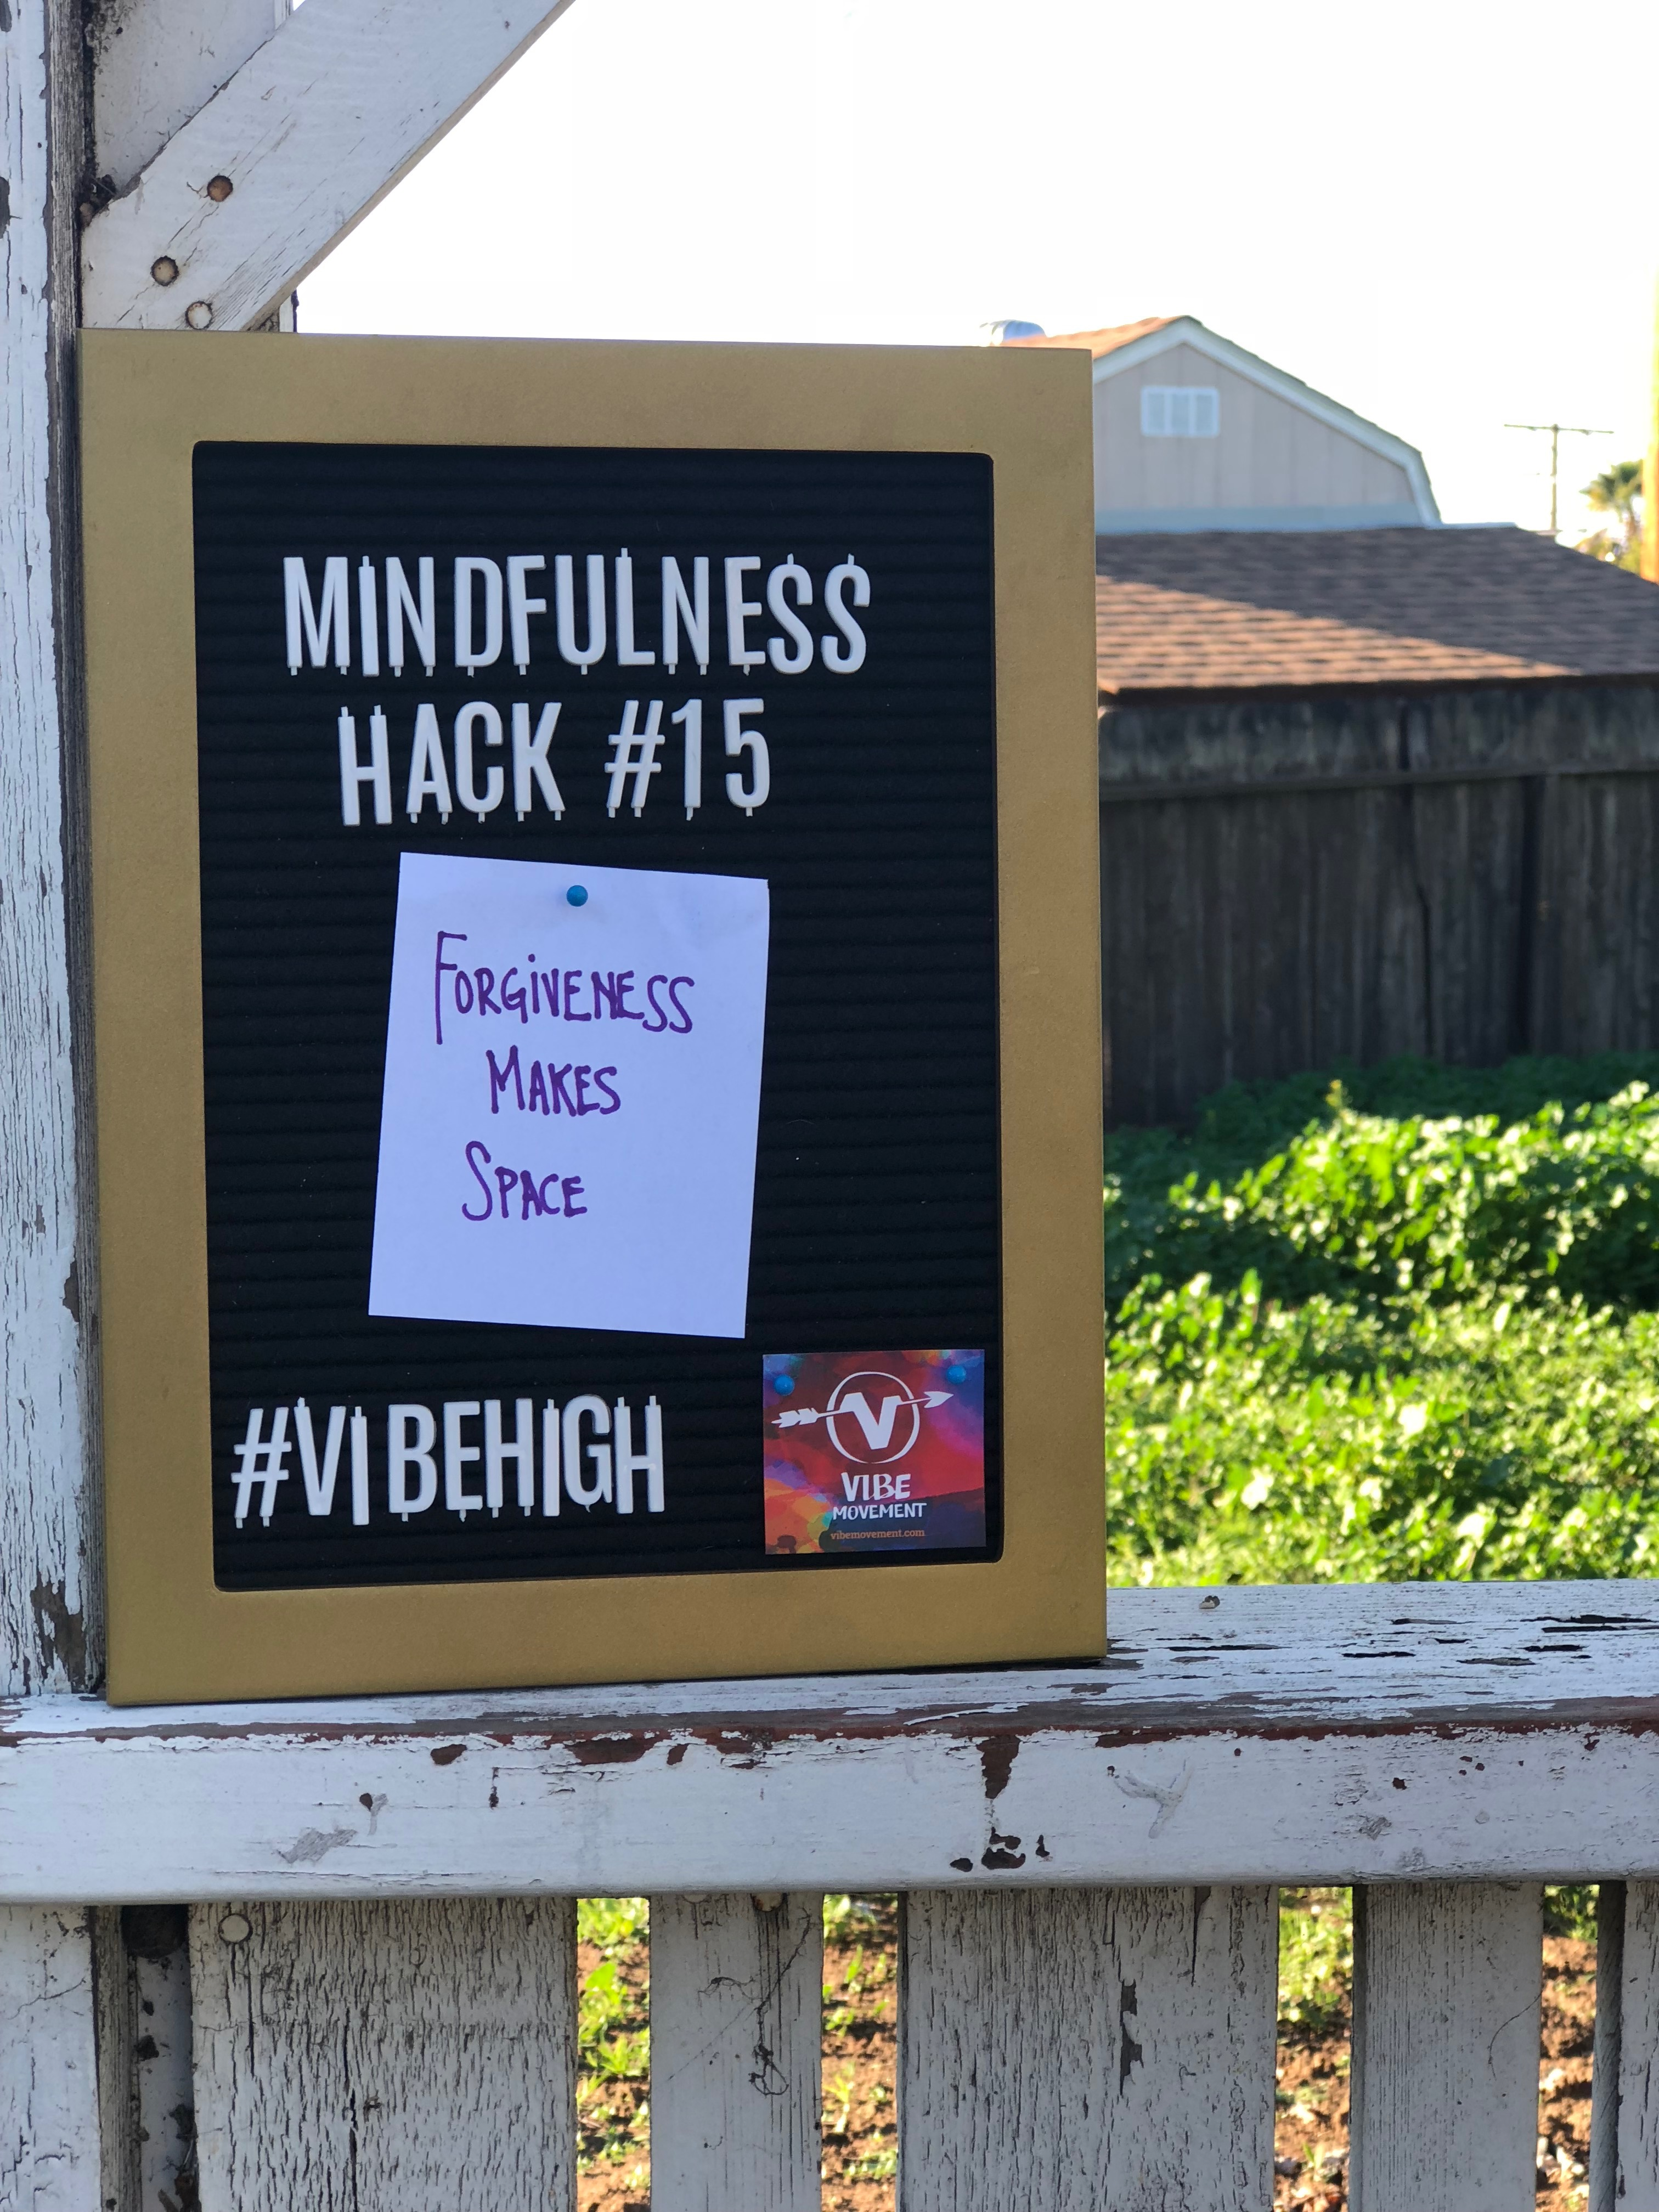 Mindfulness Hack #15: Forgiveness Makes Space